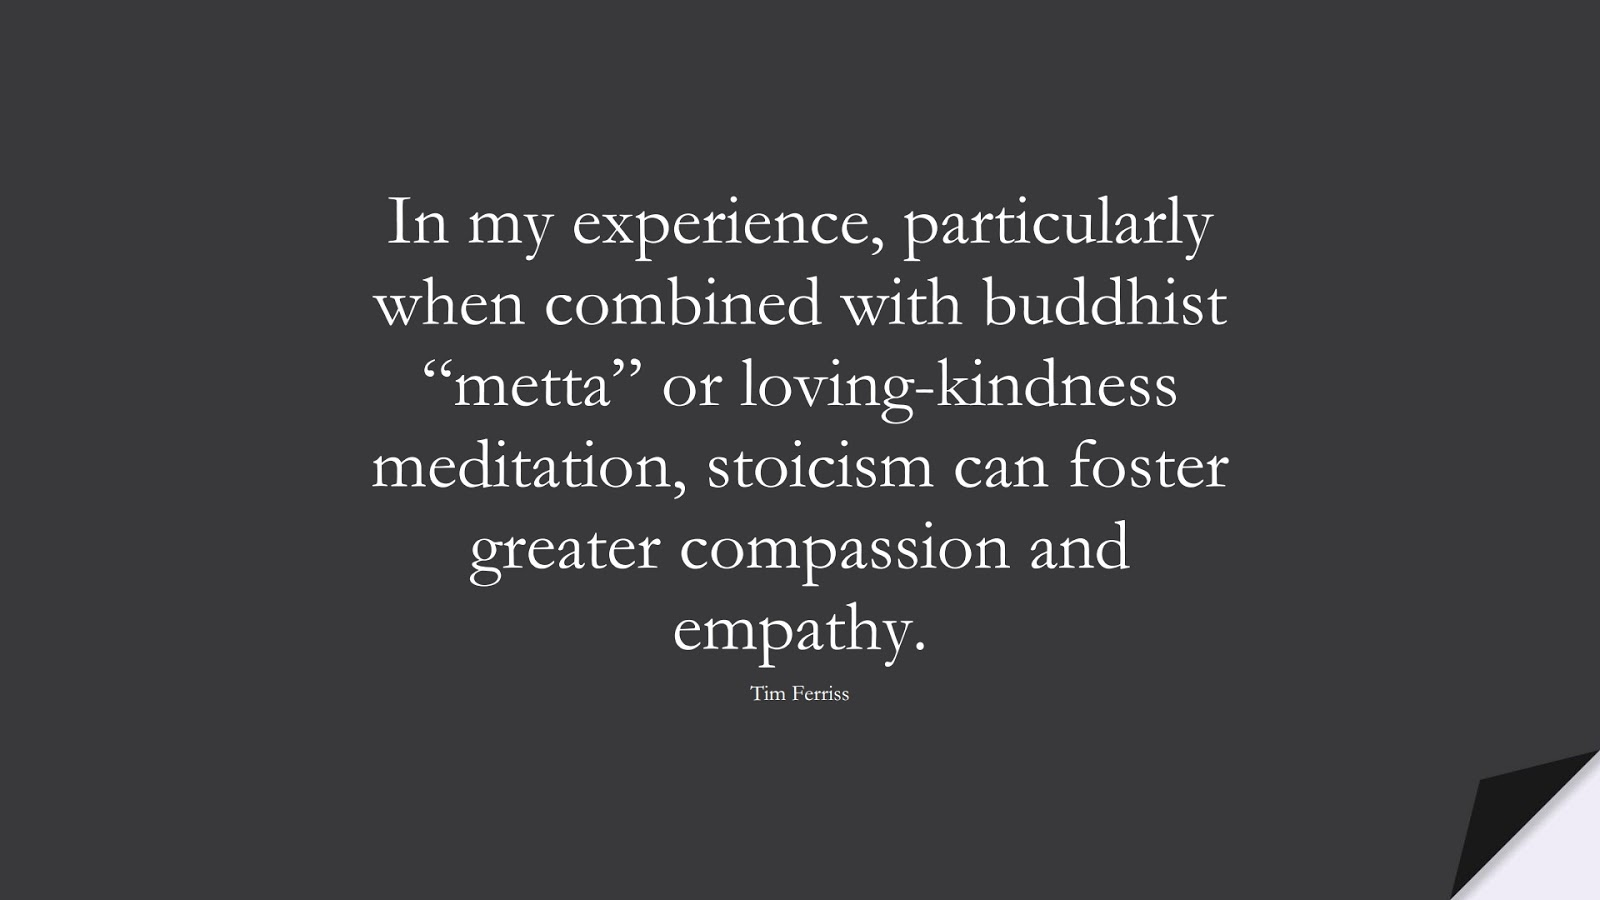 """In my experience, particularly when combined with buddhist """"metta"""" or loving-kindness meditation, stoicism can foster greater compassion and empathy. (Tim Ferriss);  #TimFerrissQuotes"""